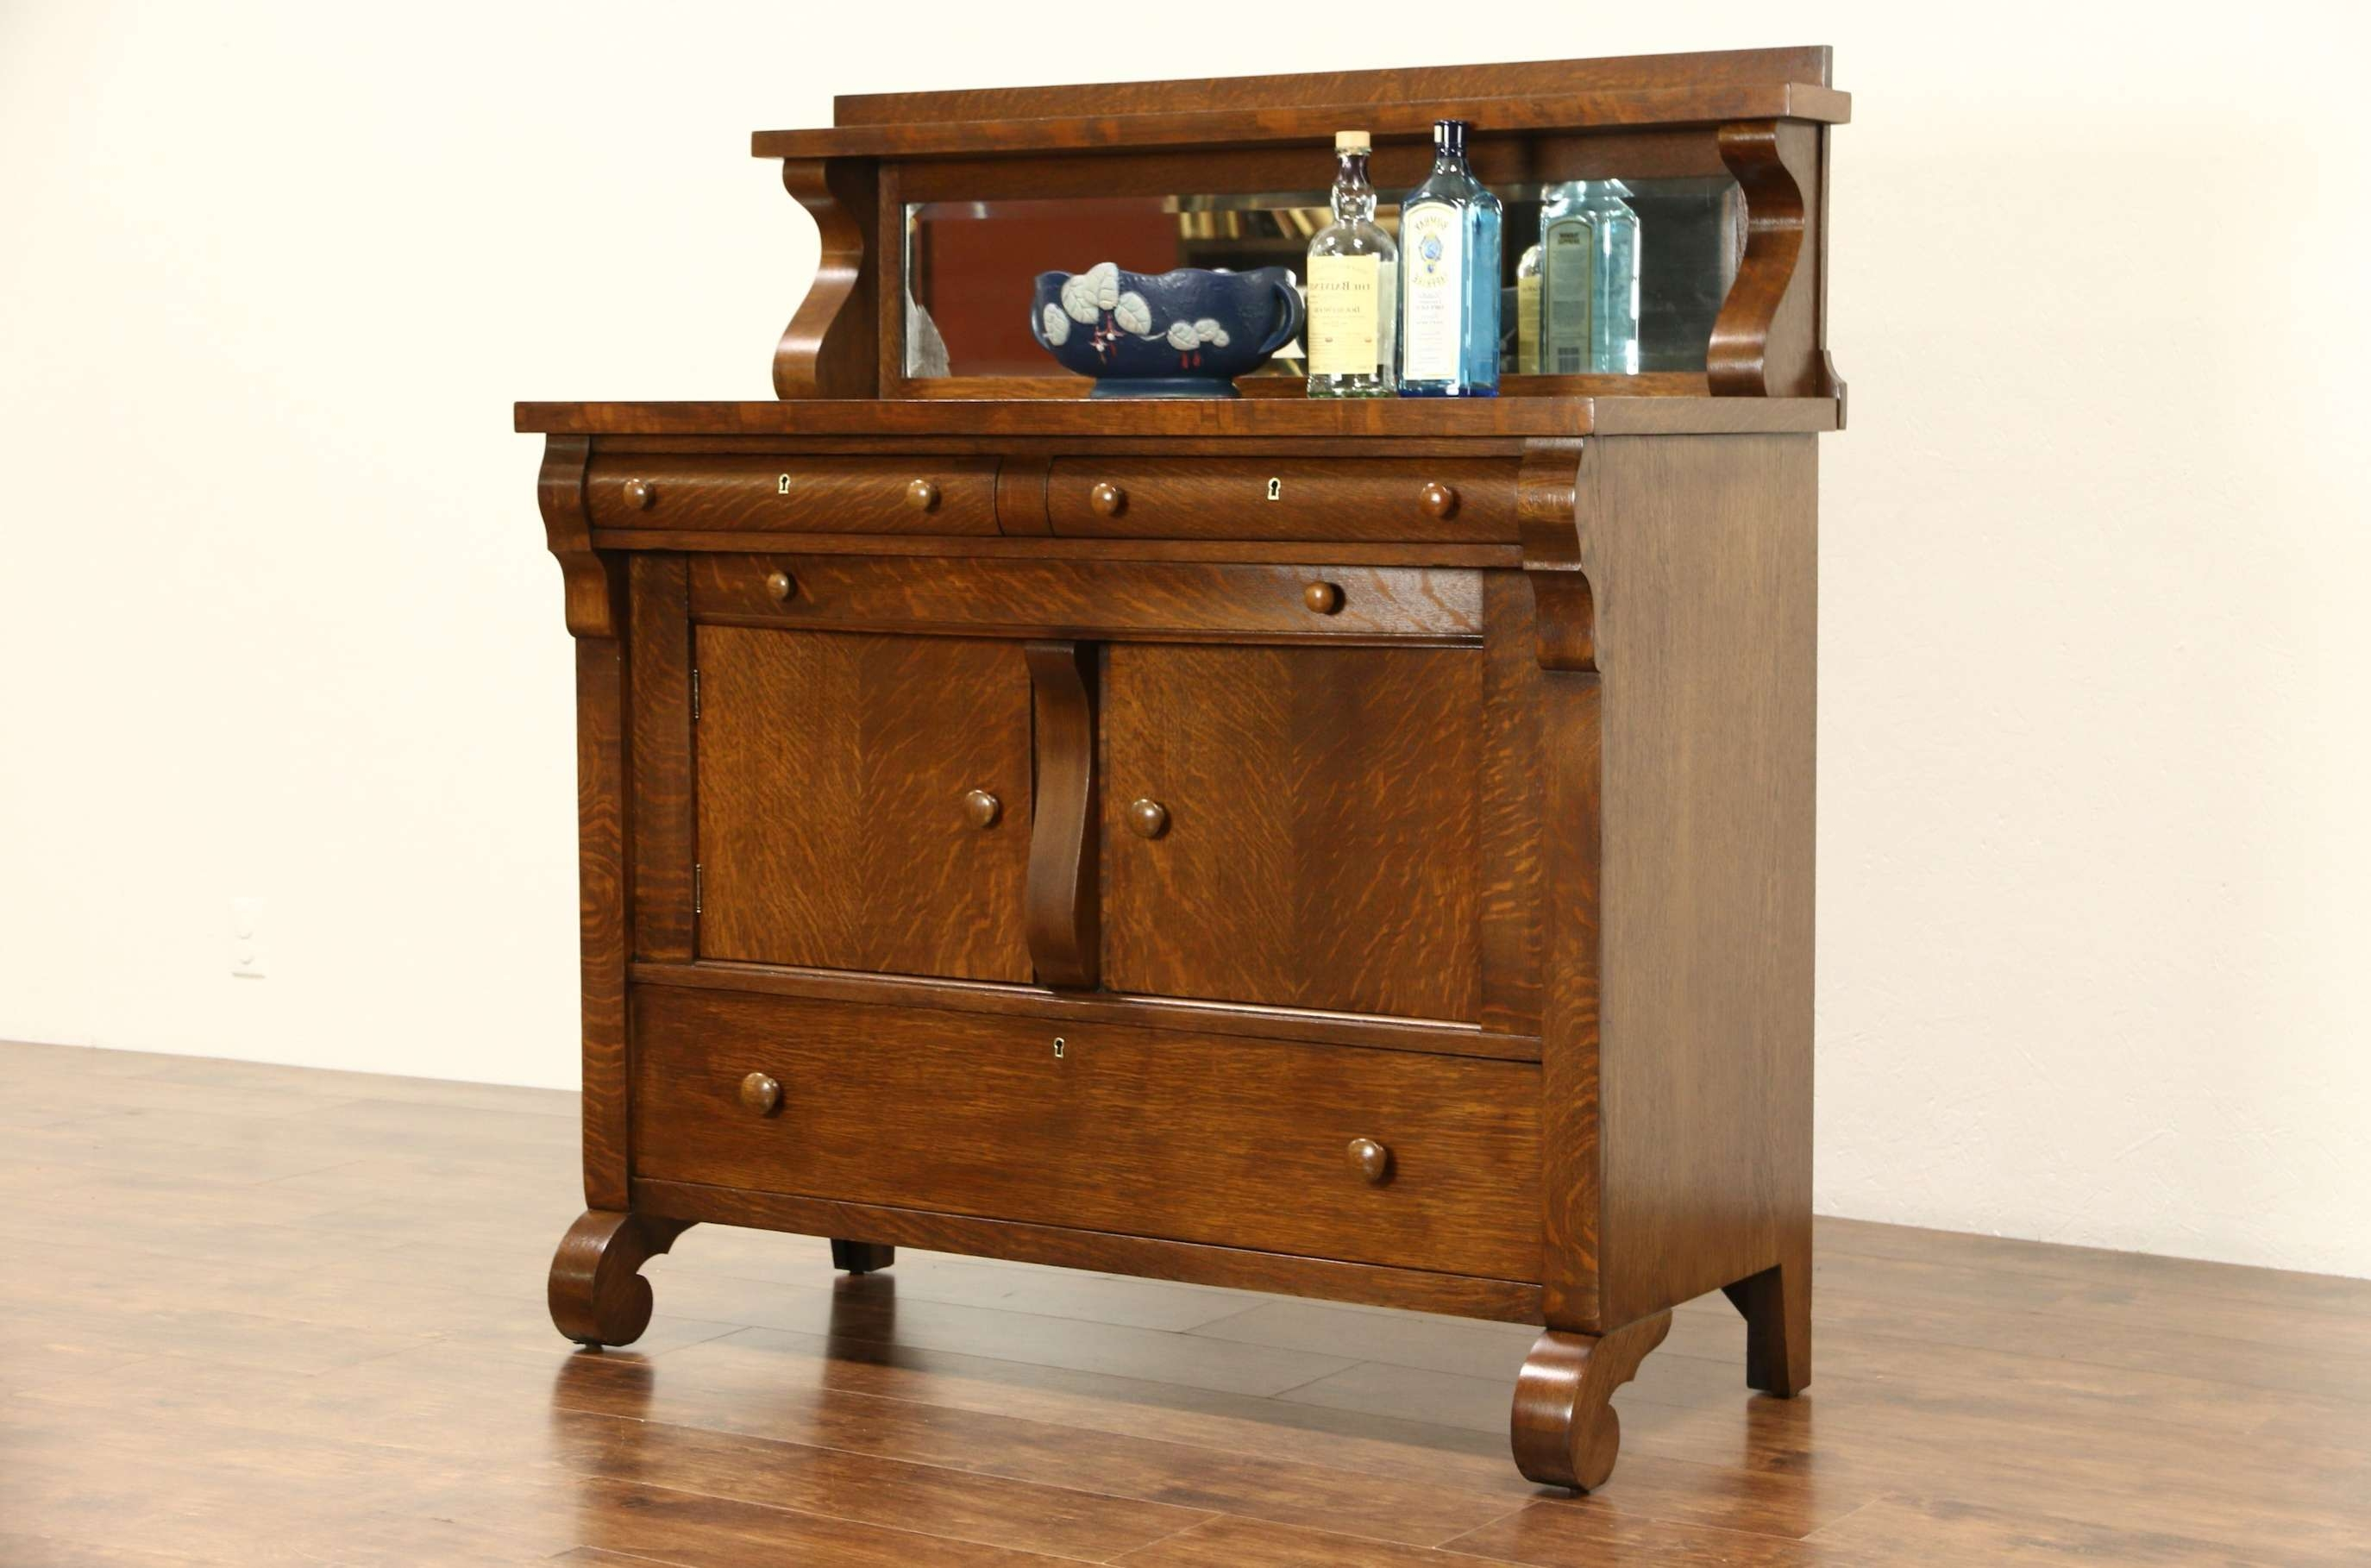 Sold – Oak 1900 Antique Empire Sideboard Or Buffet, Beveled Mirror Inside Antique Sideboards With Mirror (View 2 of 20)